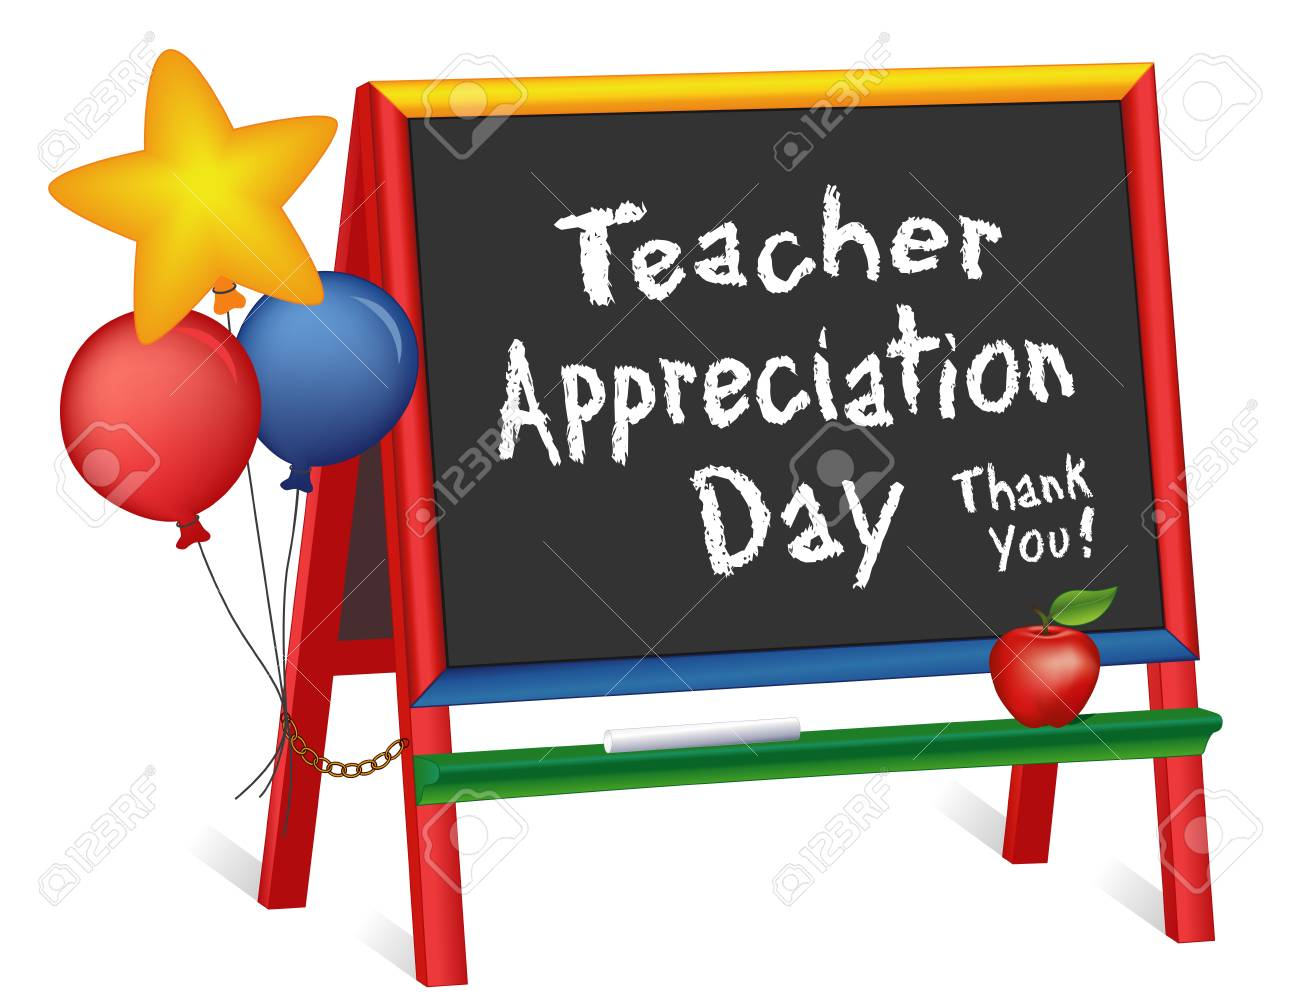 Teacher Appreciation Day, Tuesday of first full week of May, star and balloons, apple for the teacher, thank you, wood chalkboard easel for children, for preschool, daycare, kindergarten, nursery, elementary school, isolated on white background. - 99536254